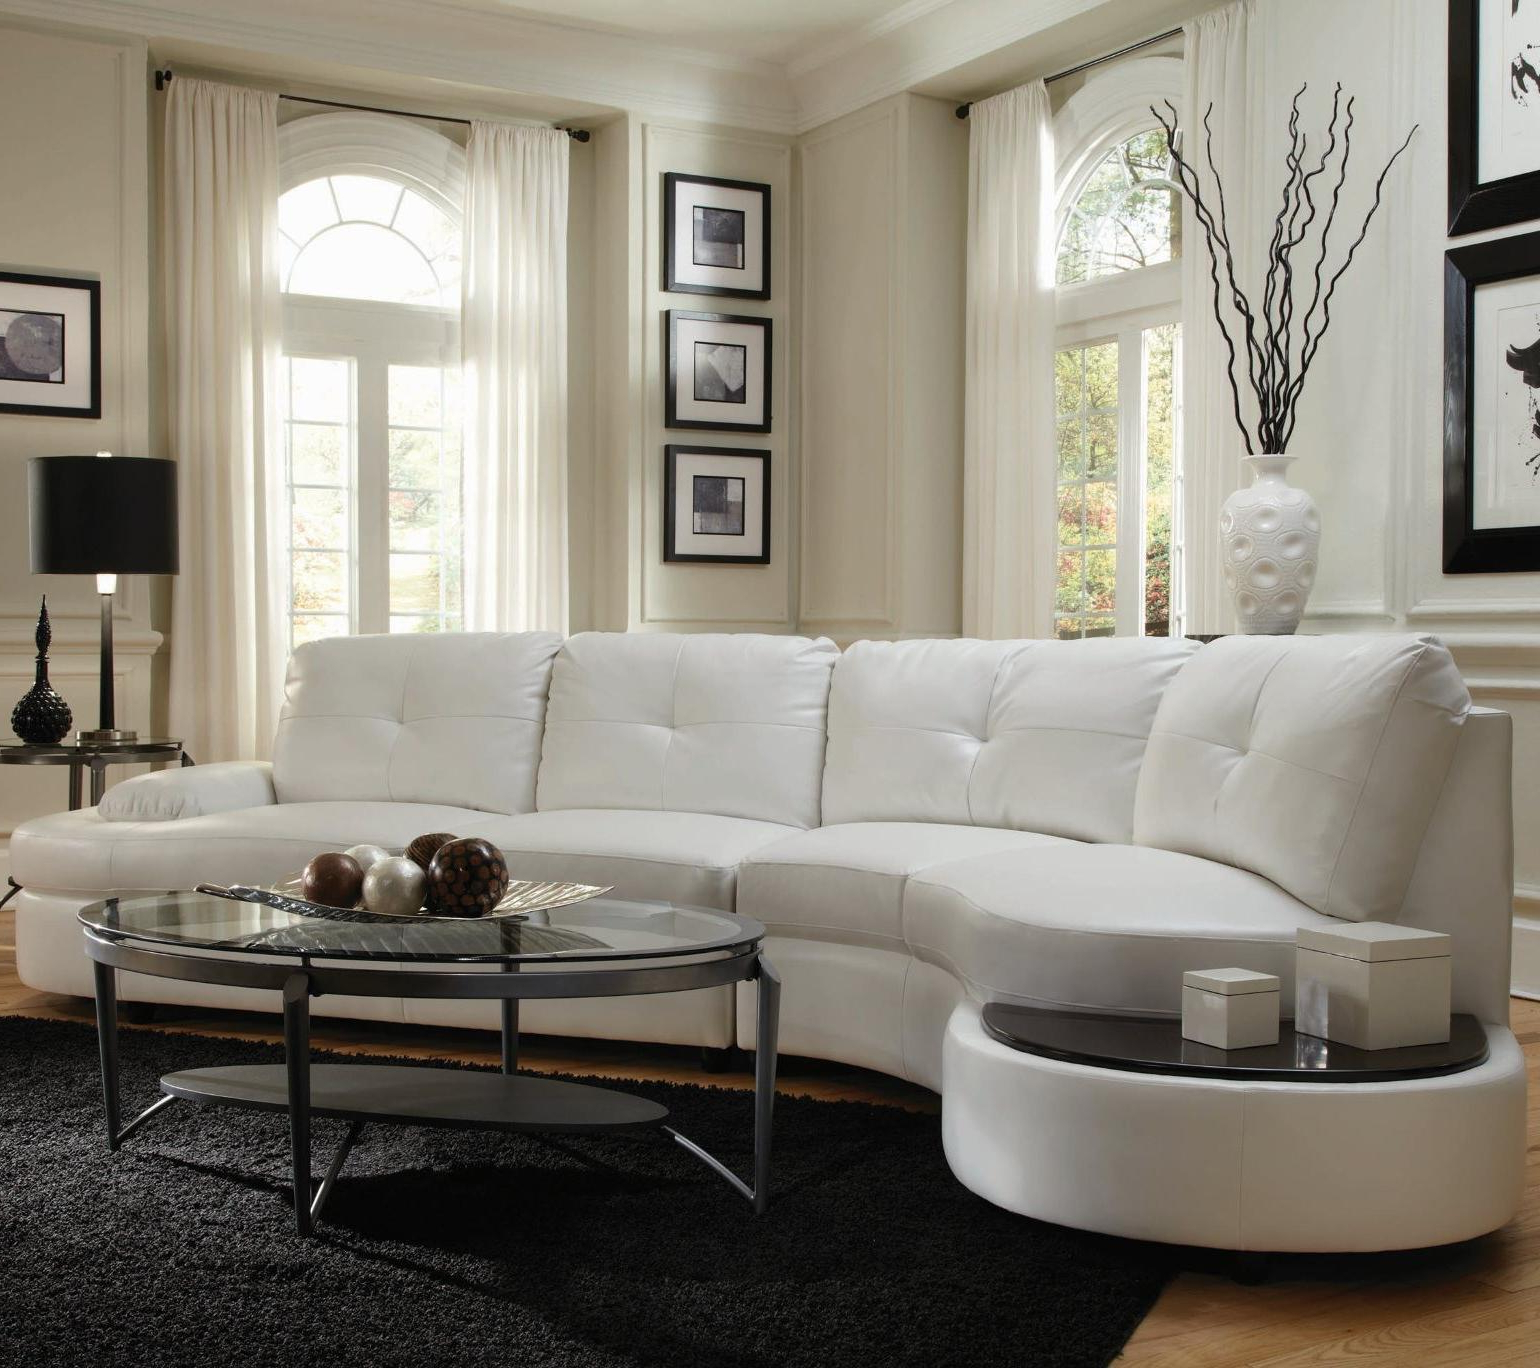 Well Liked Talia Contemporary Sectional Conversation Sofa With Built In Table Pertaining To Contemporary Curves Coffee Tables (Gallery 18 of 20)